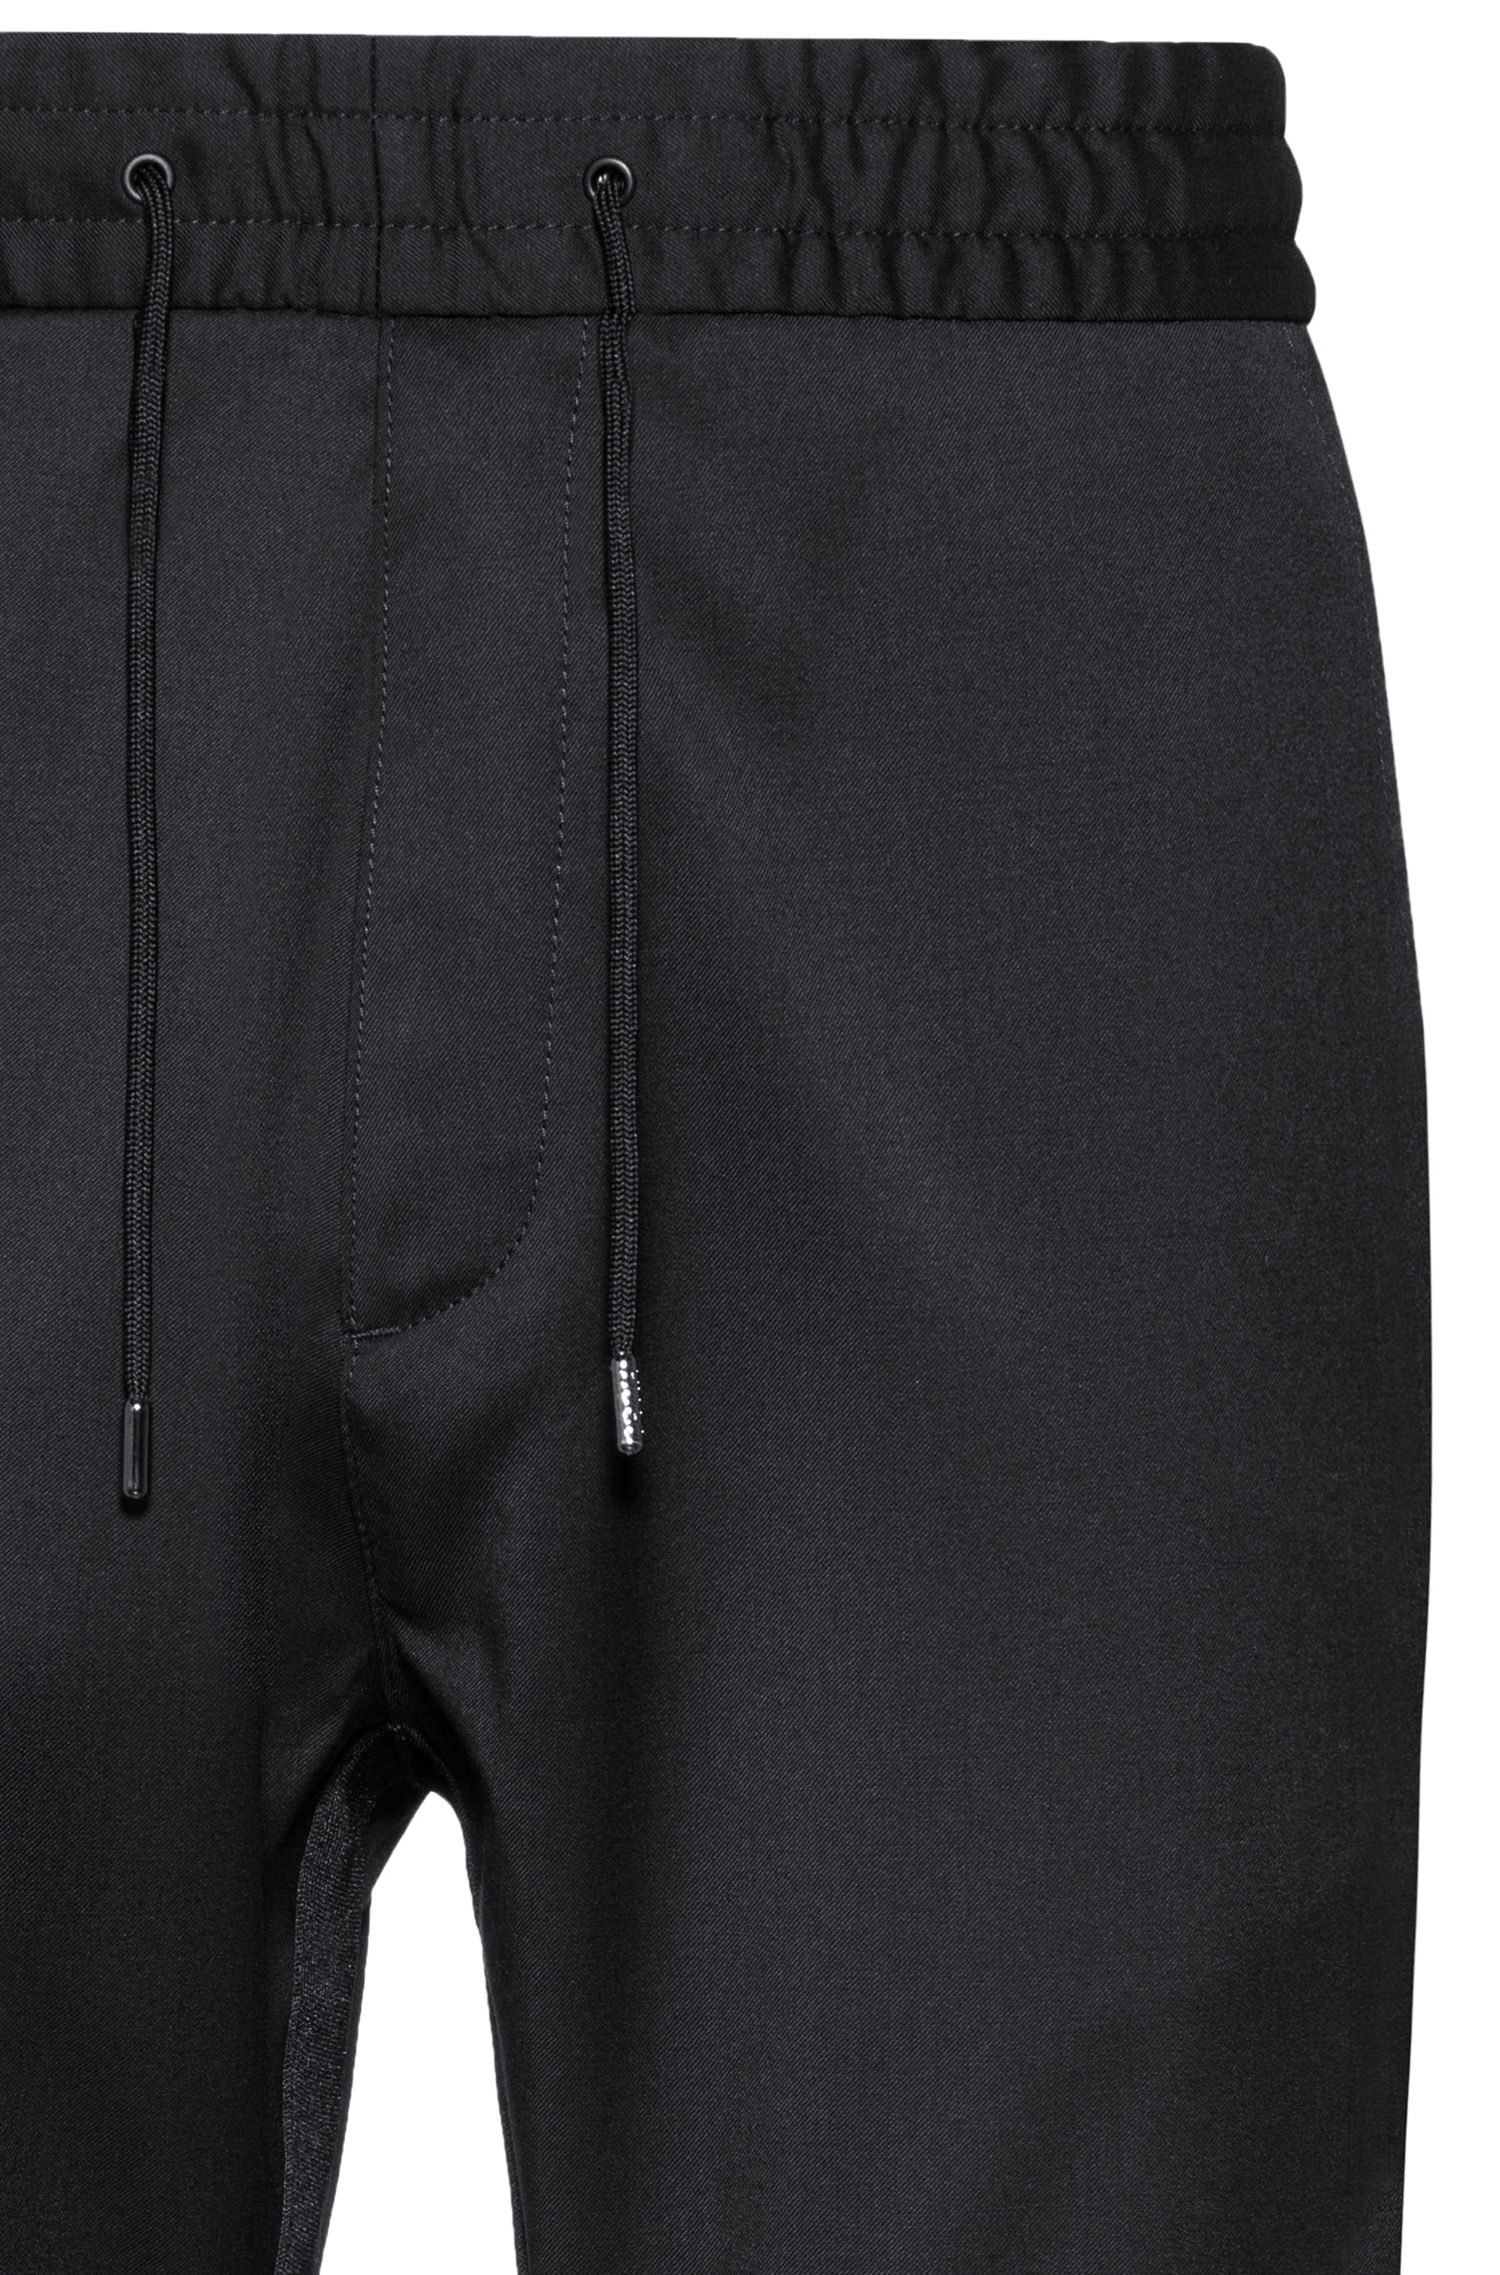 Tapered-fit cuffed trousers in virgin wool, Black